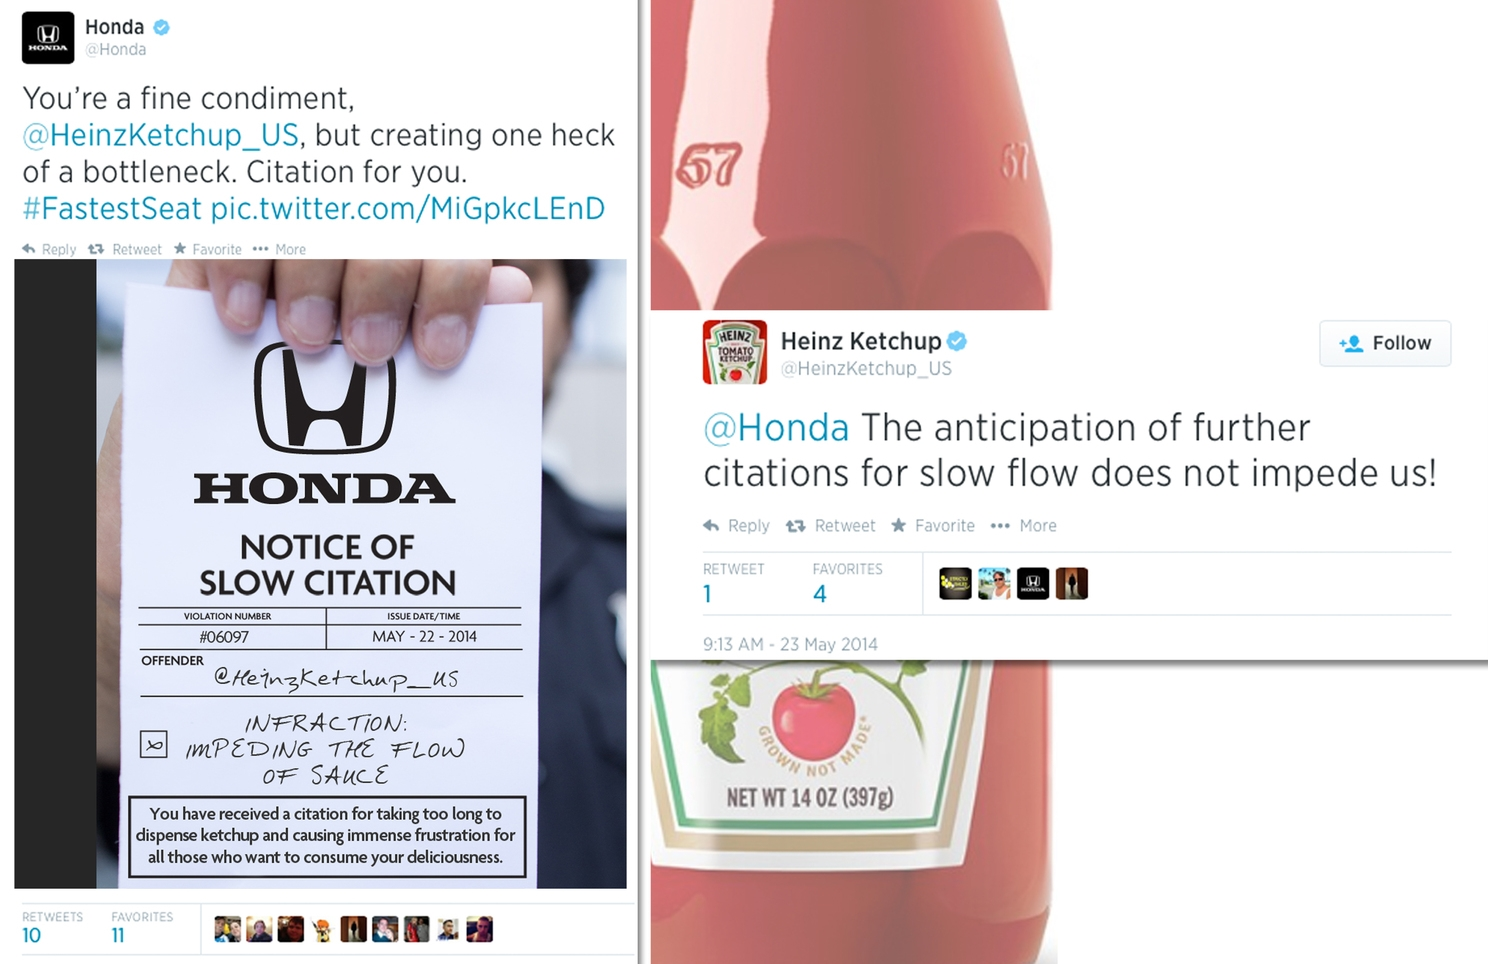 Twitter campaign sending Slow Citations to brands: Heinz Ketchup, Whole Foods, Starbucks to name a few.